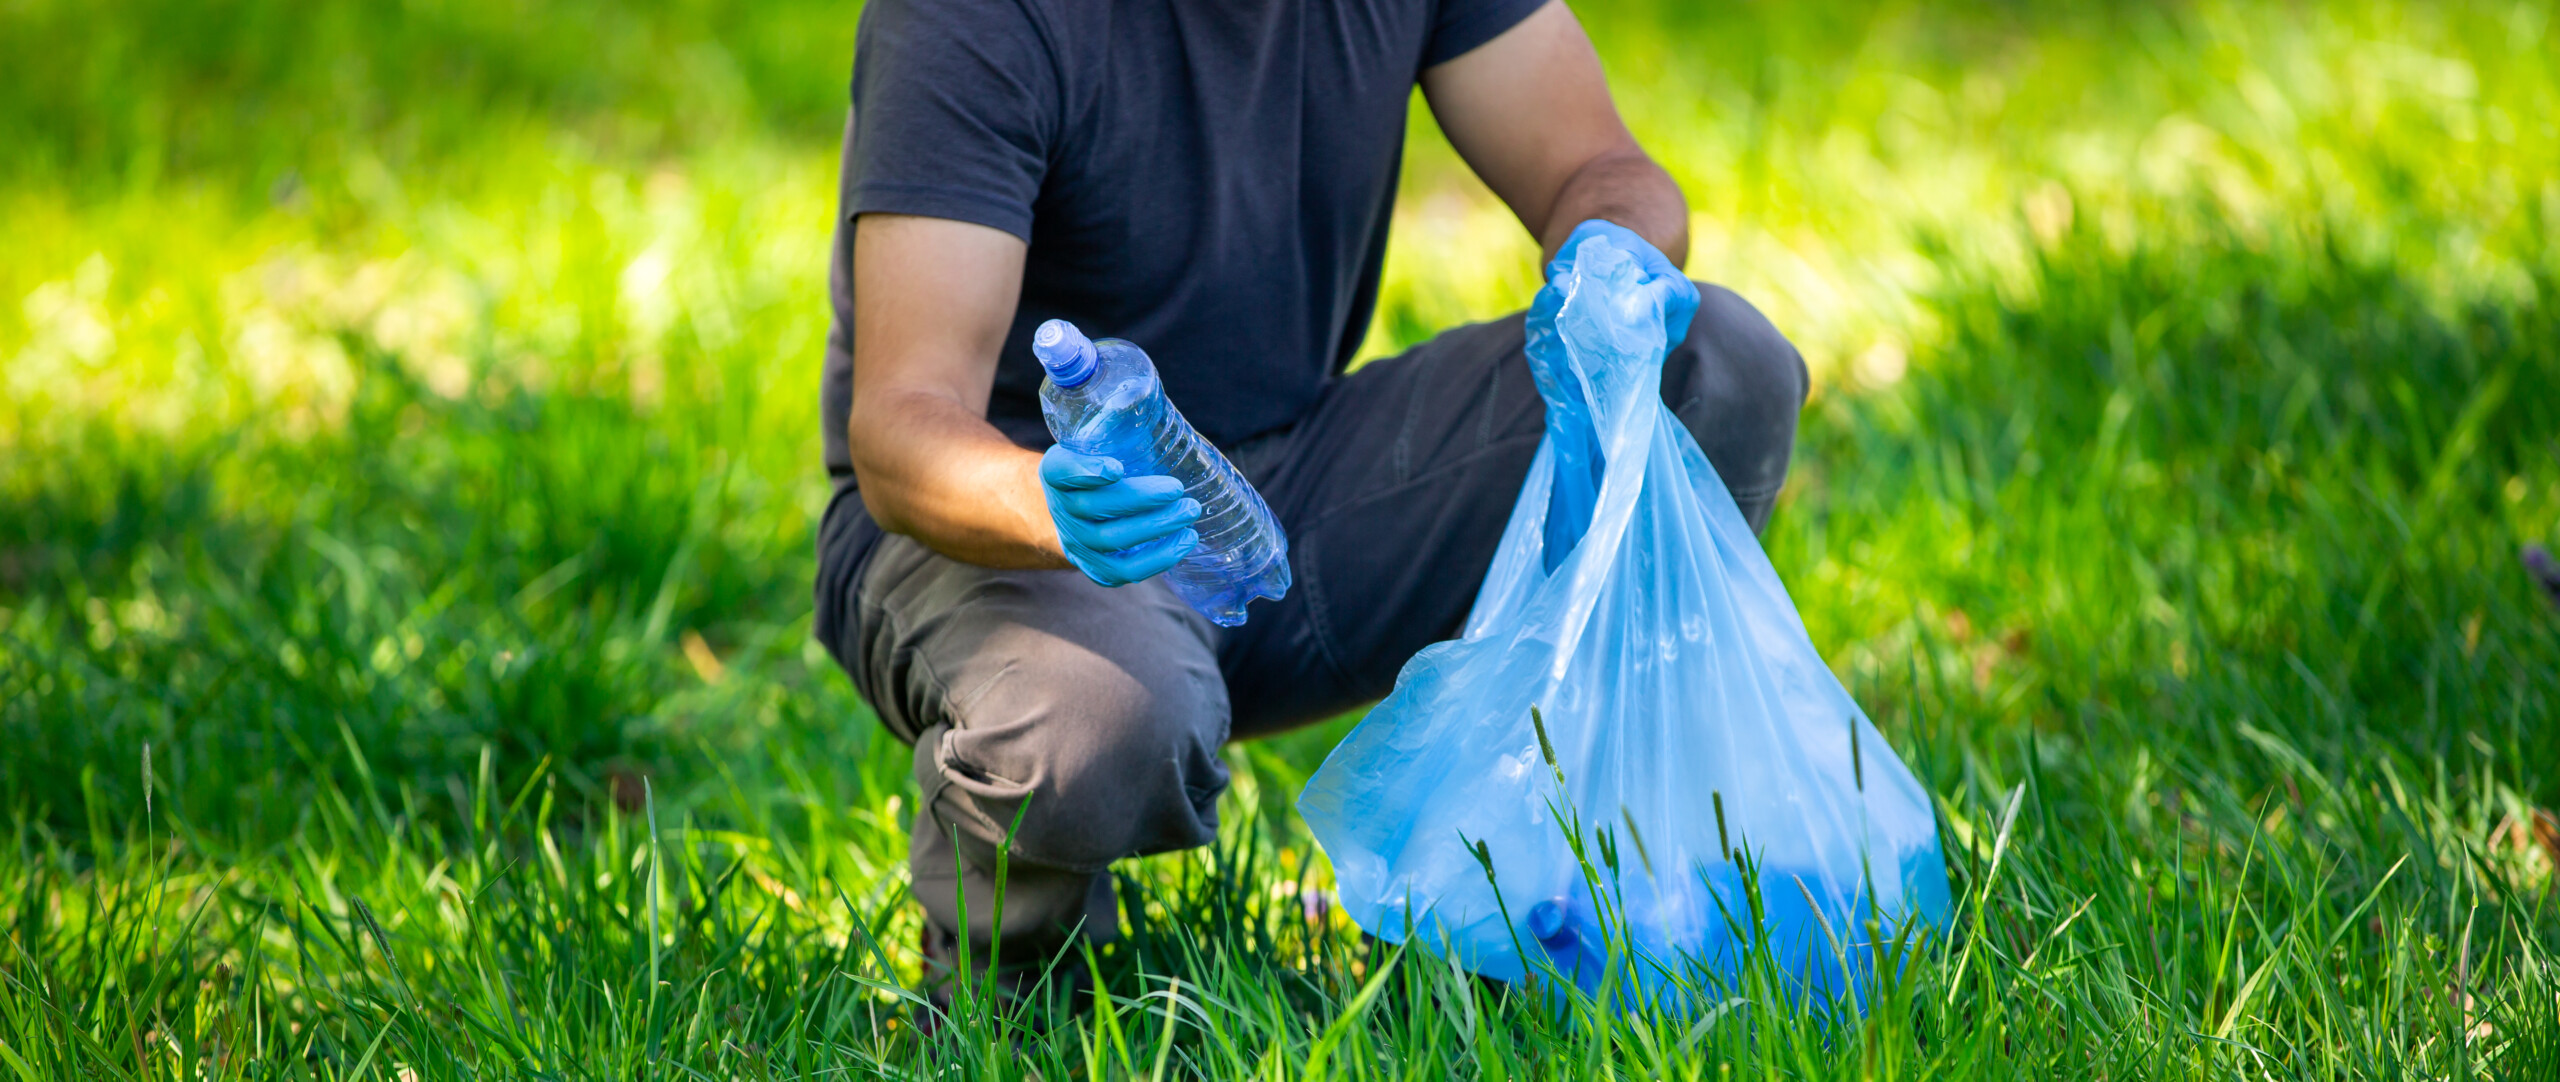 Man picking up plastic bottle, garbage collecting in forest cleaning planet, help garbage collection charity environment